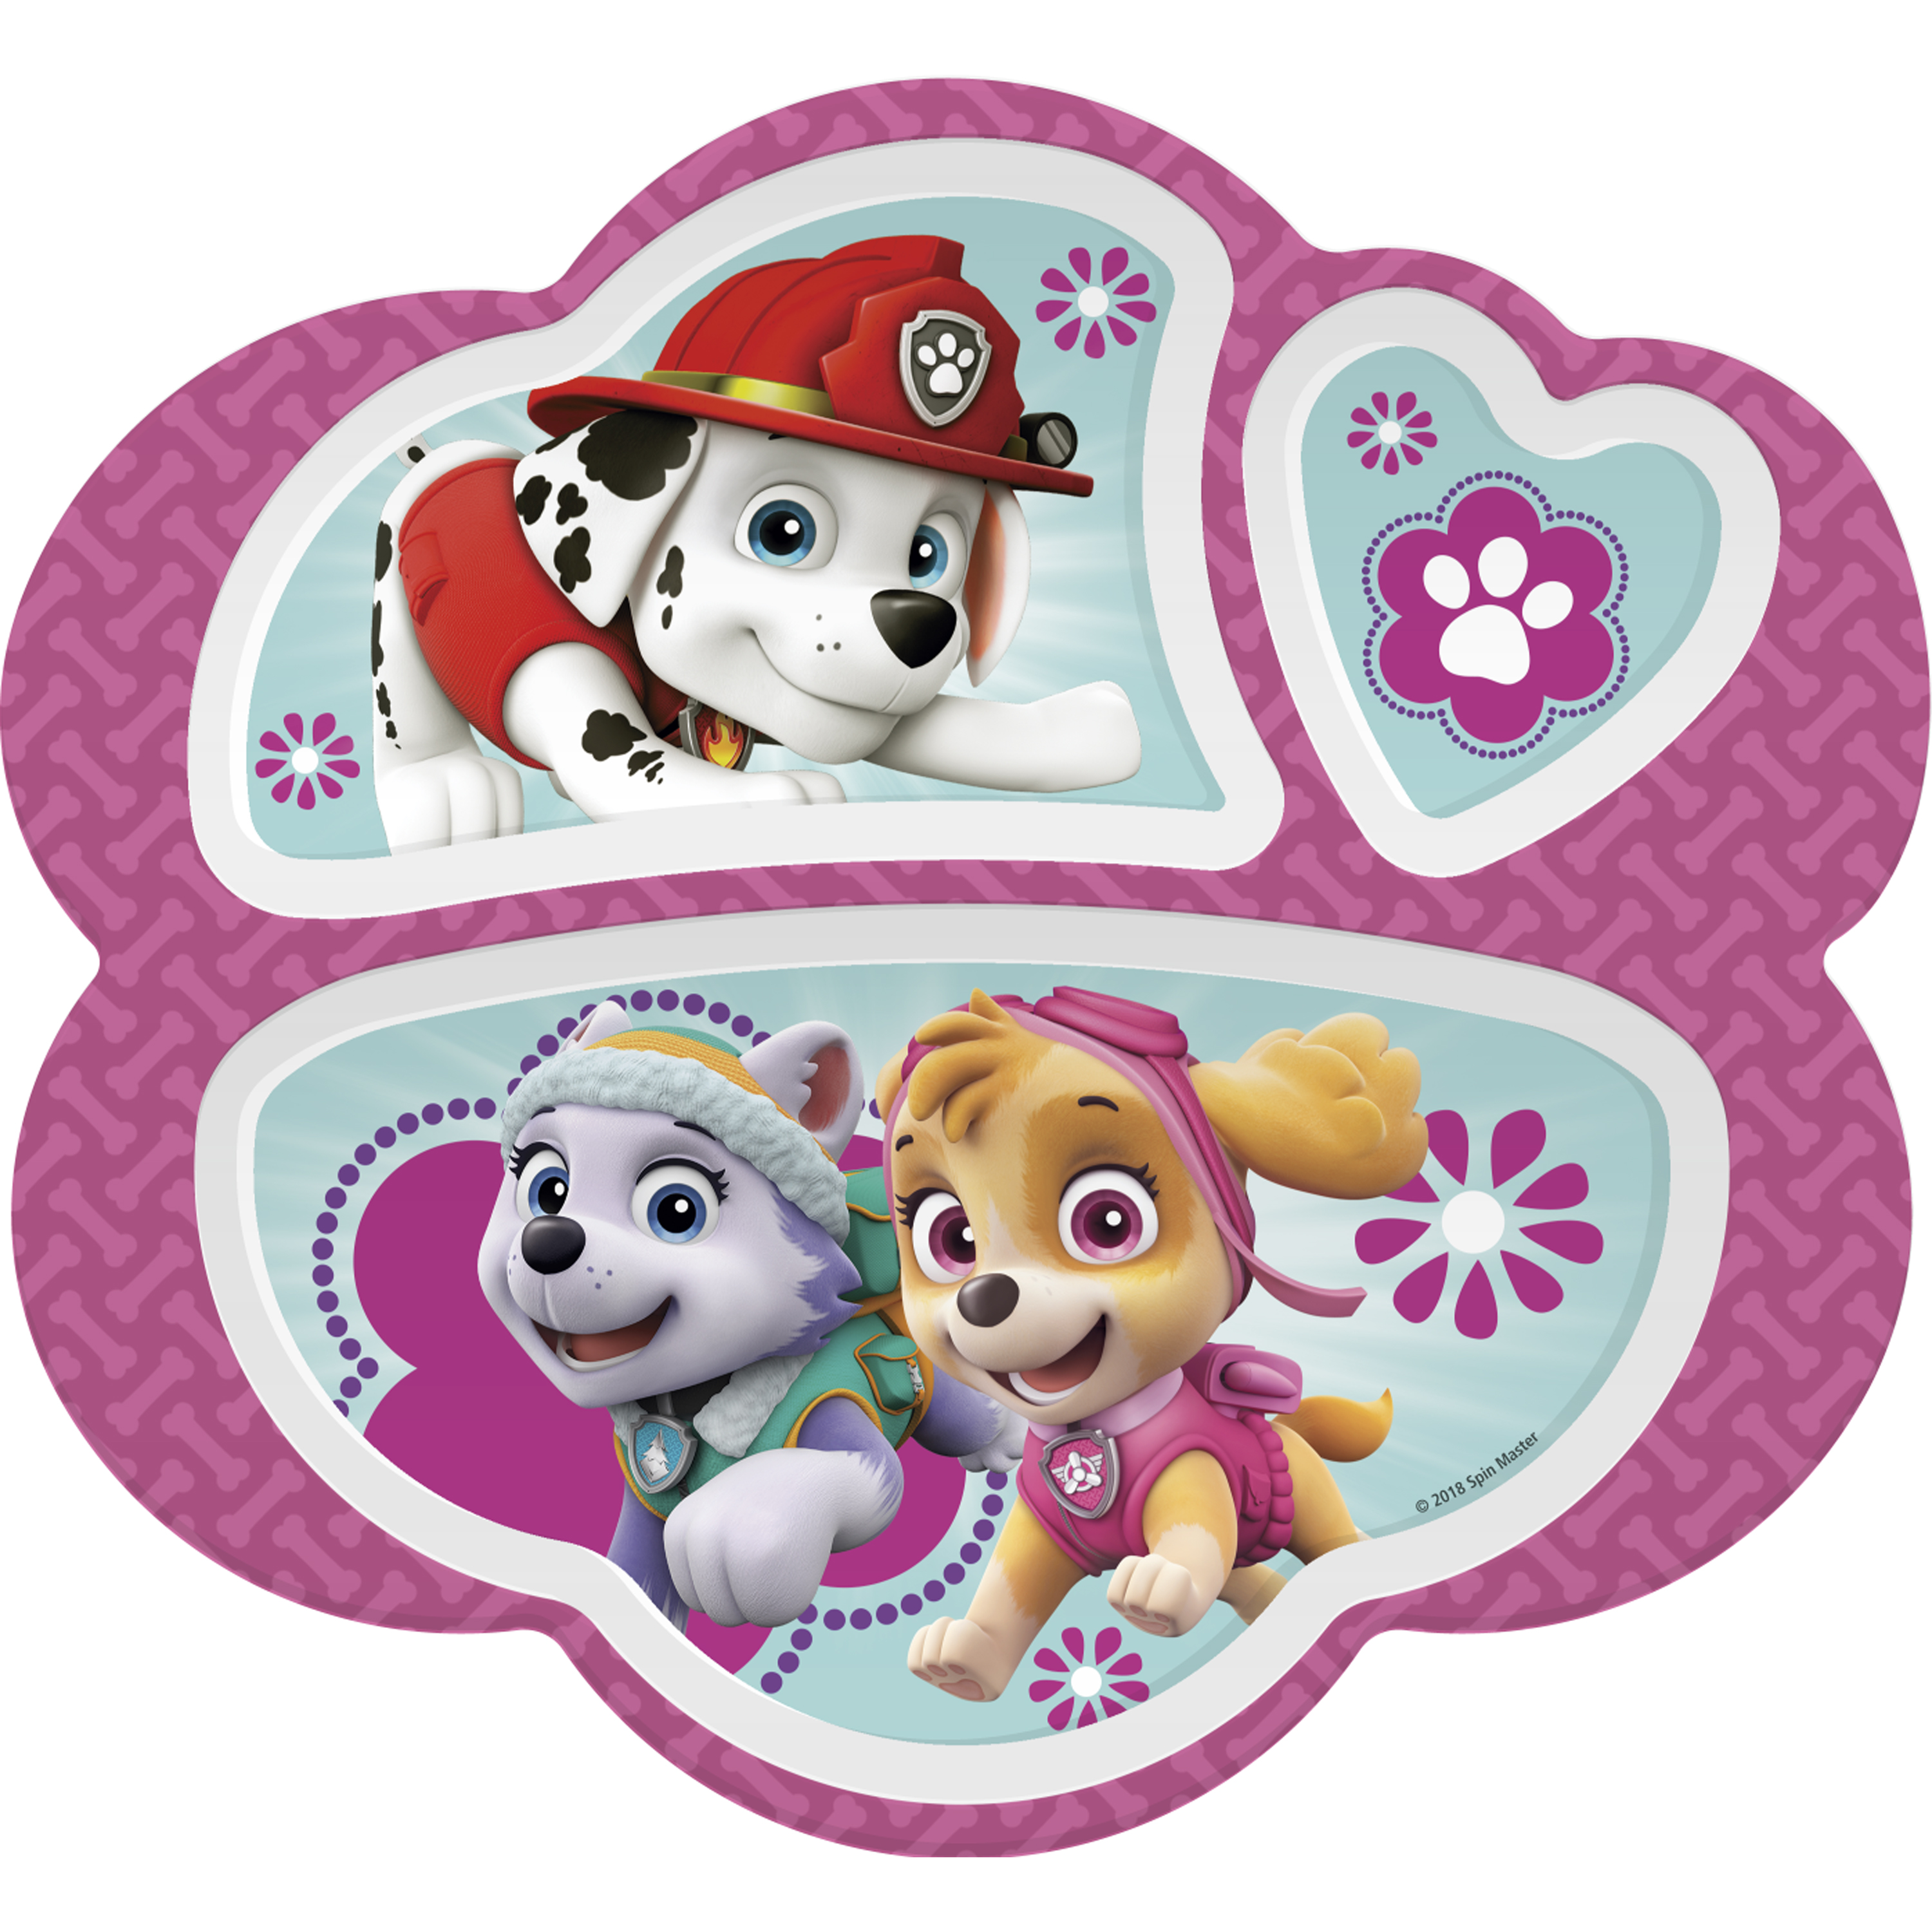 Paw Patrol Kid's Dinnerware Set, Skye, Everest and Marshall, 3-piece set slideshow image 3